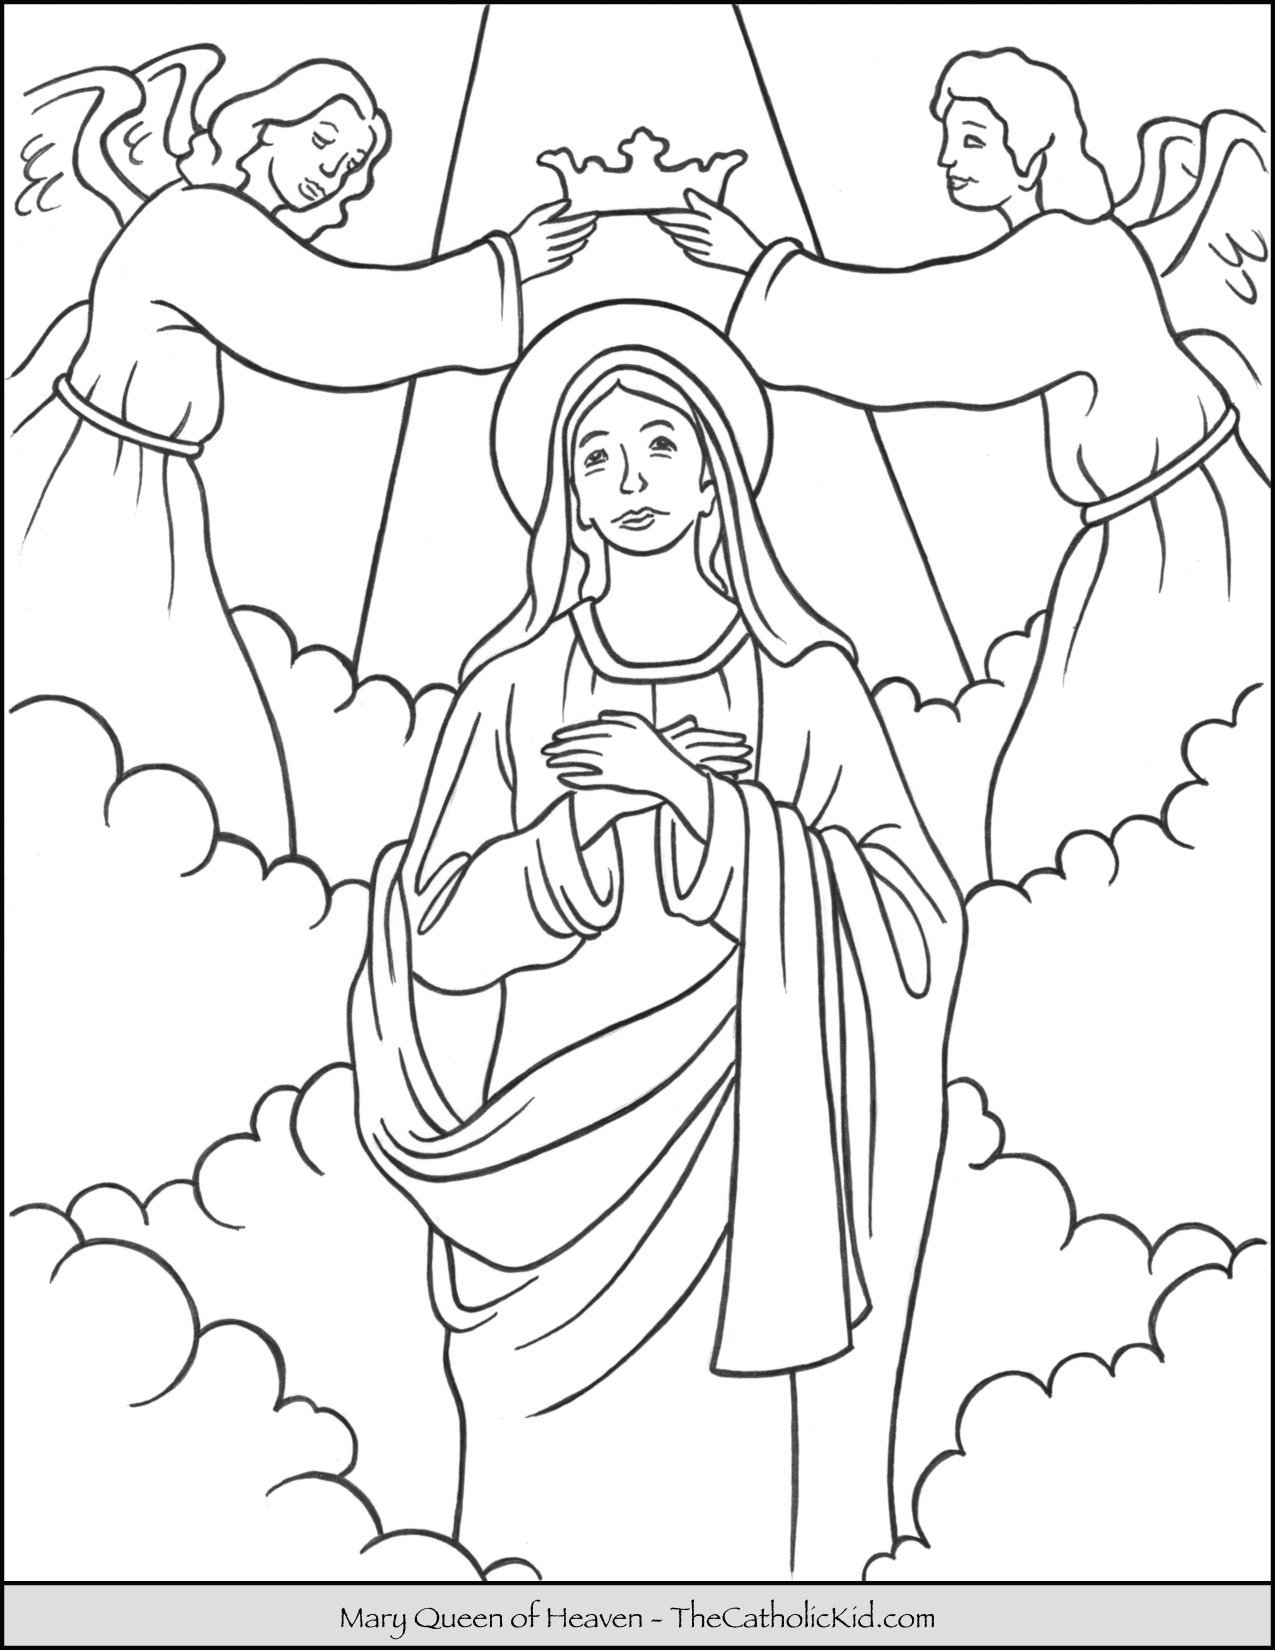 Mary Queen Of Heaven Coloring Page Thecatholickid Com